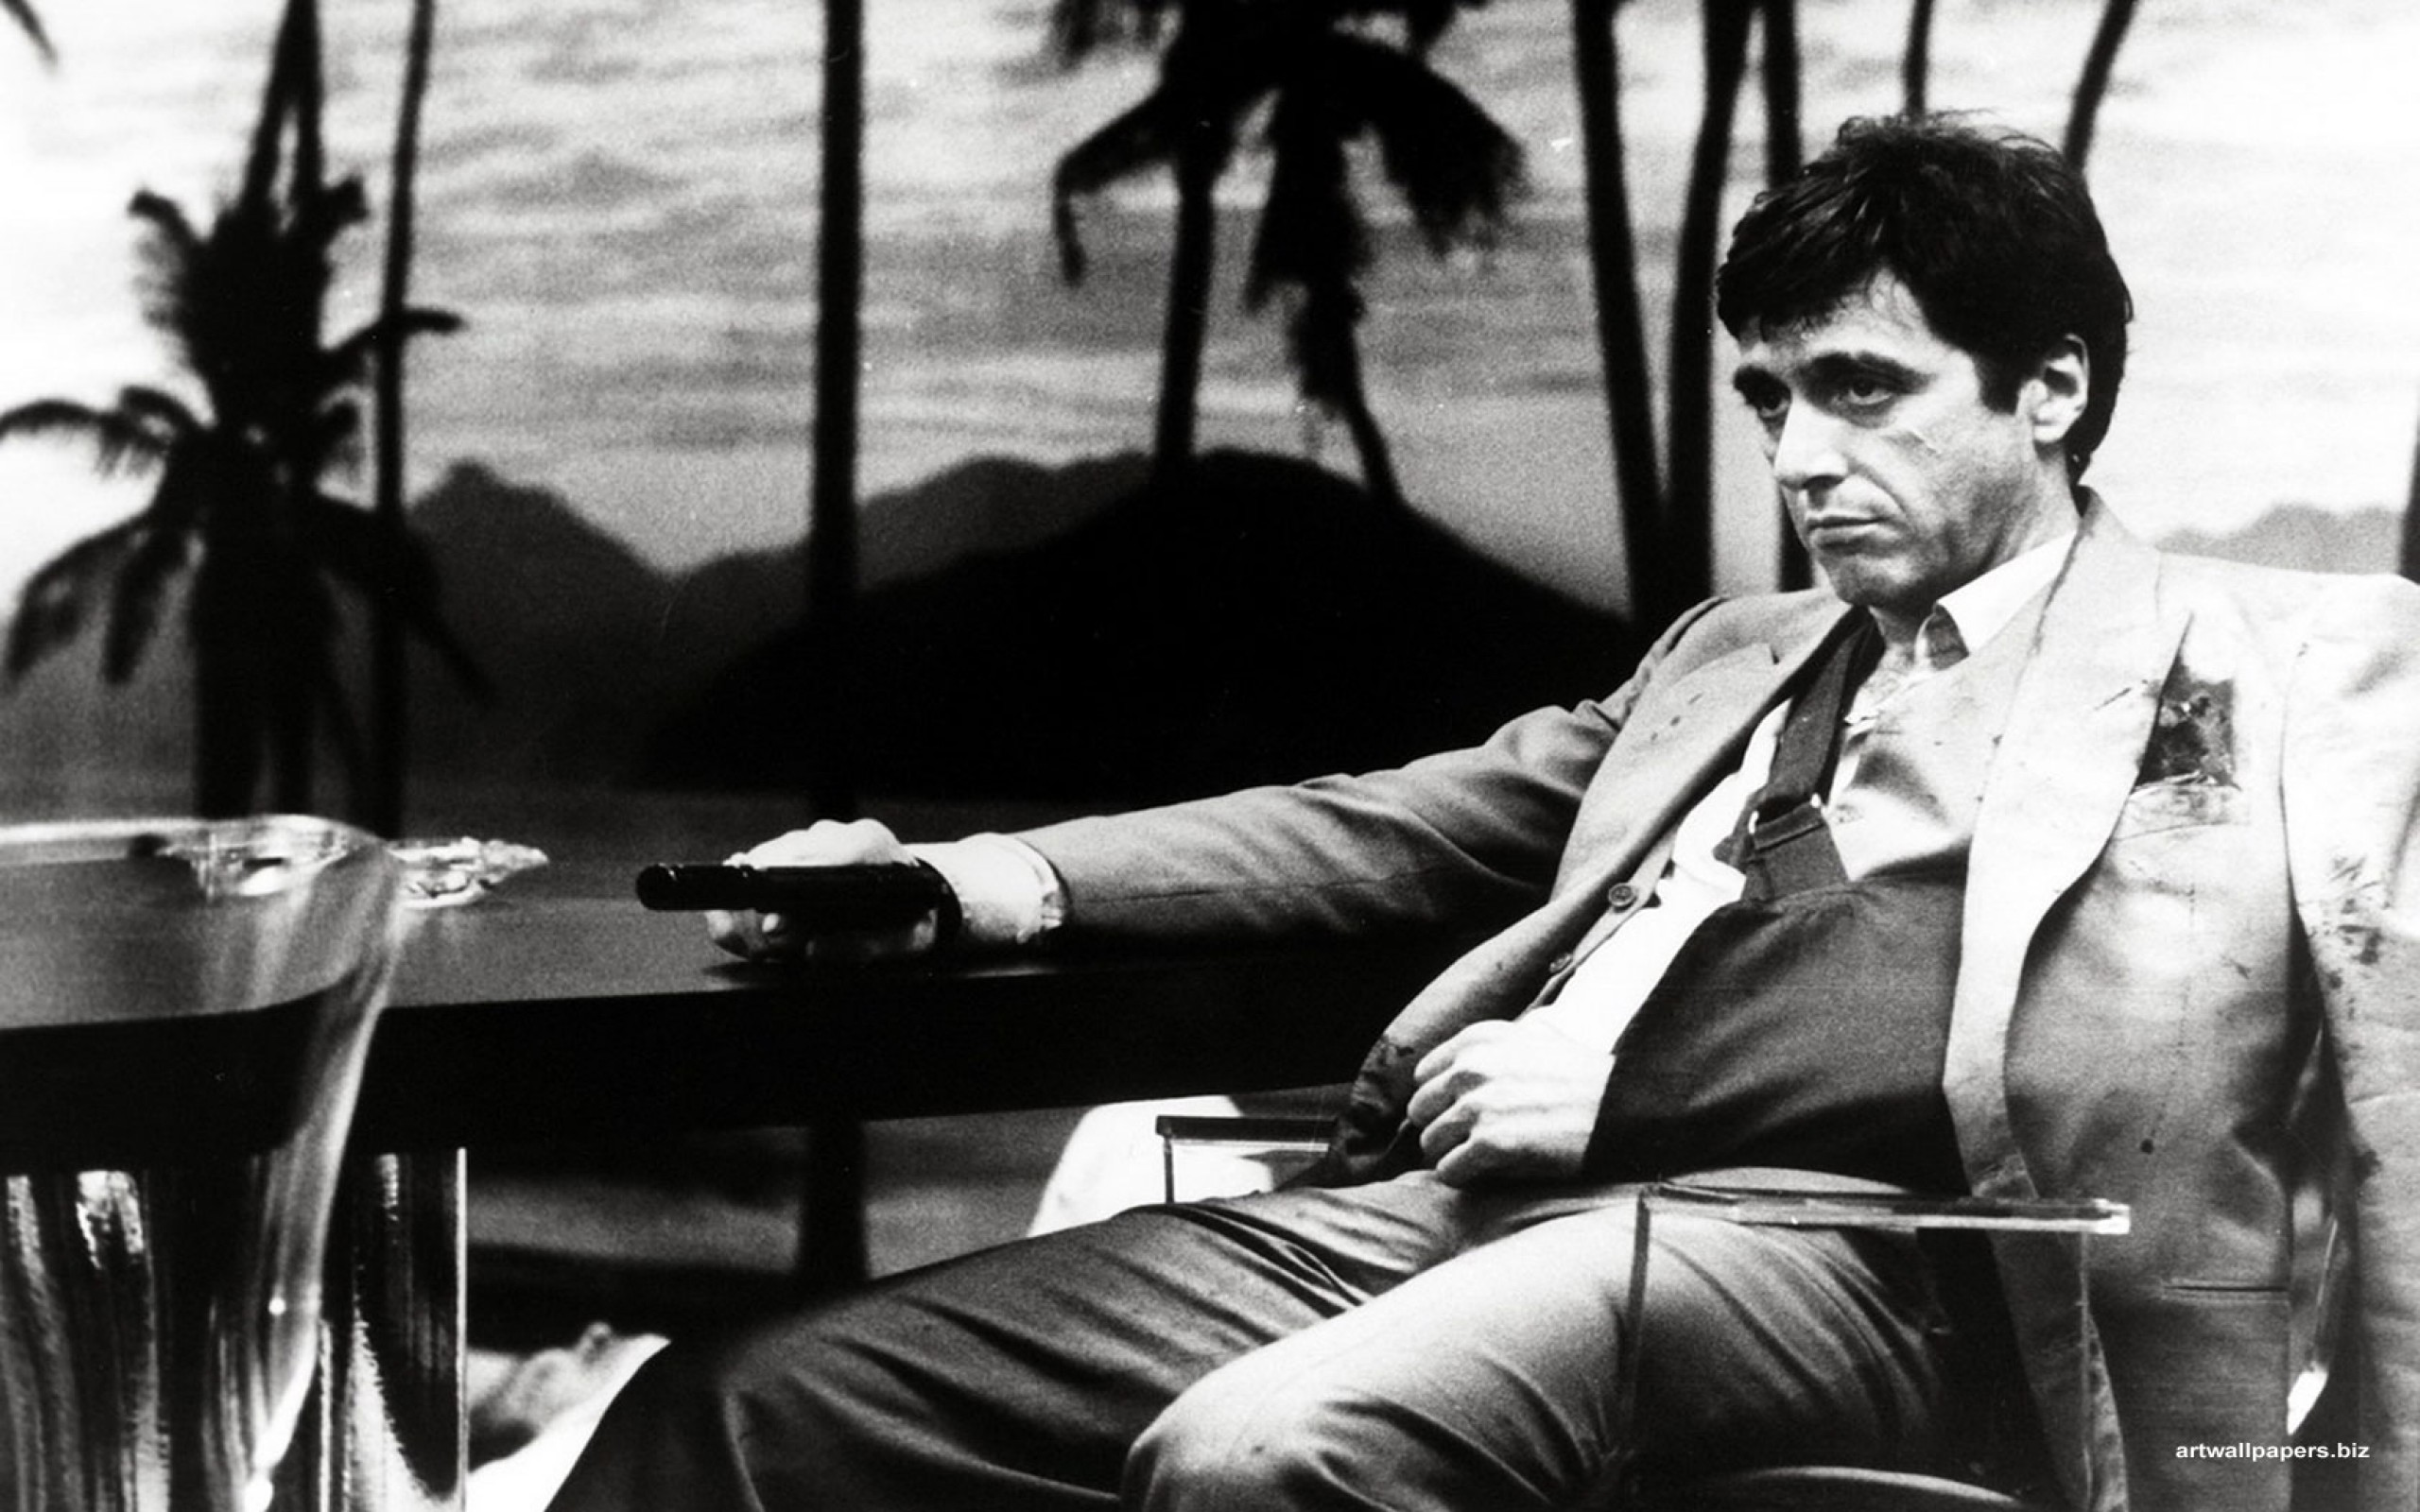 2560x1600 Al Pacino in Scarface directed by Brian De Palma, 1983